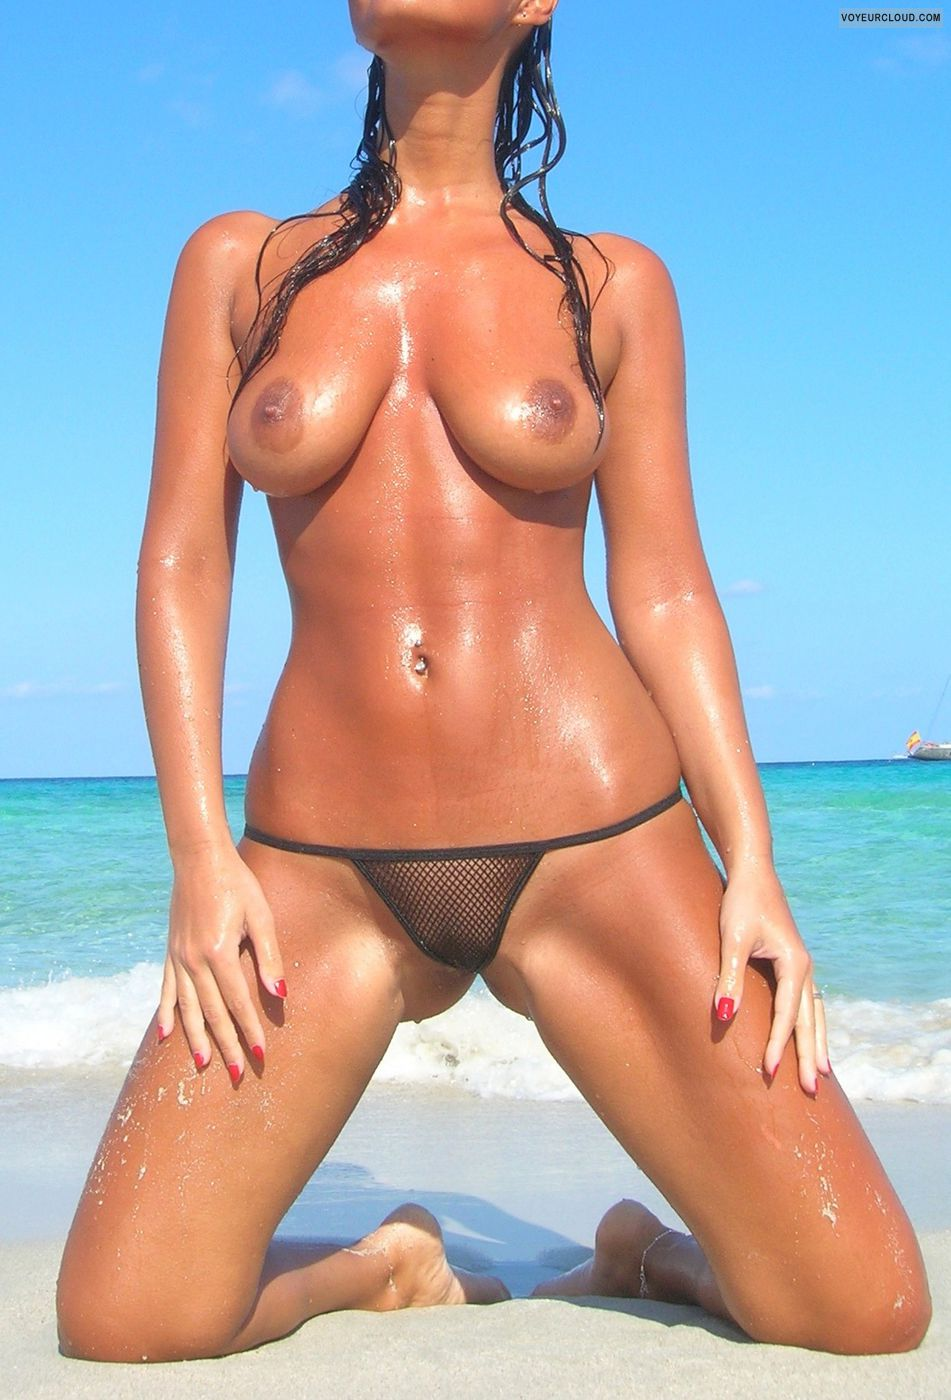 Wicked weasel bikini models useful